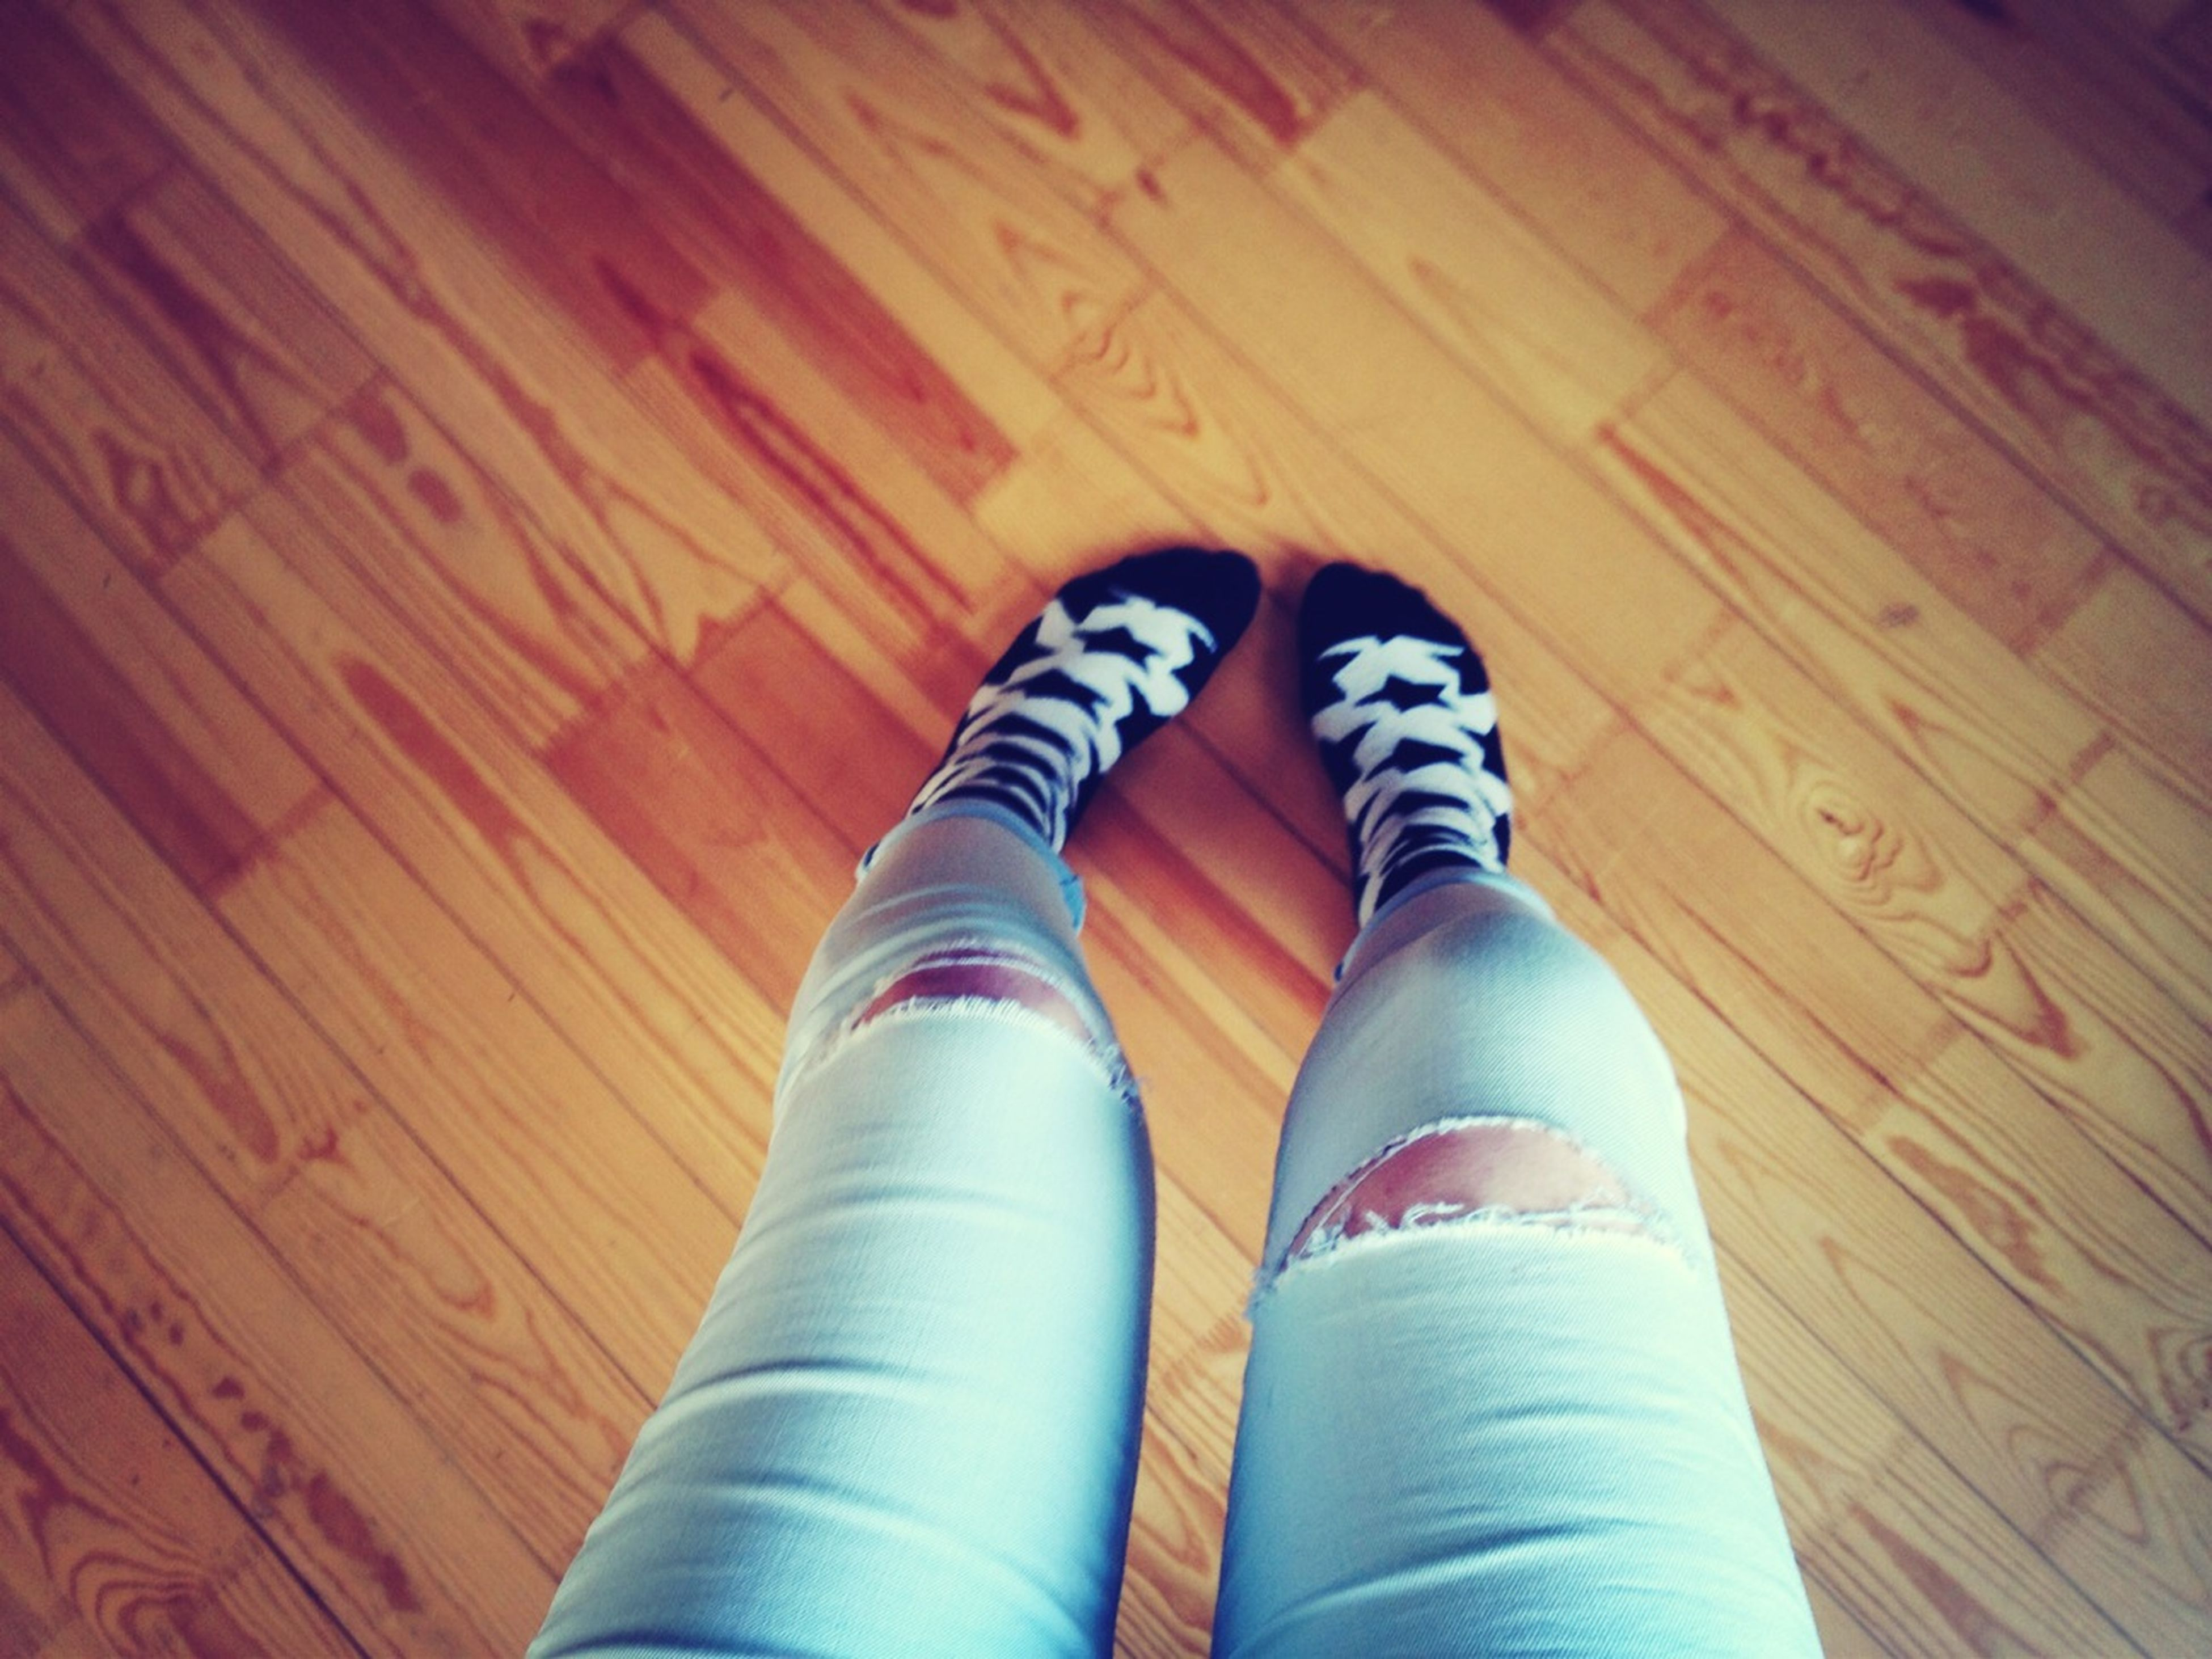 low section, shoe, indoors, person, wood - material, high angle view, personal perspective, hardwood floor, wooden, one person, footwear, flooring, human foot, floor, directly above, close-up, brown, part of, jeans